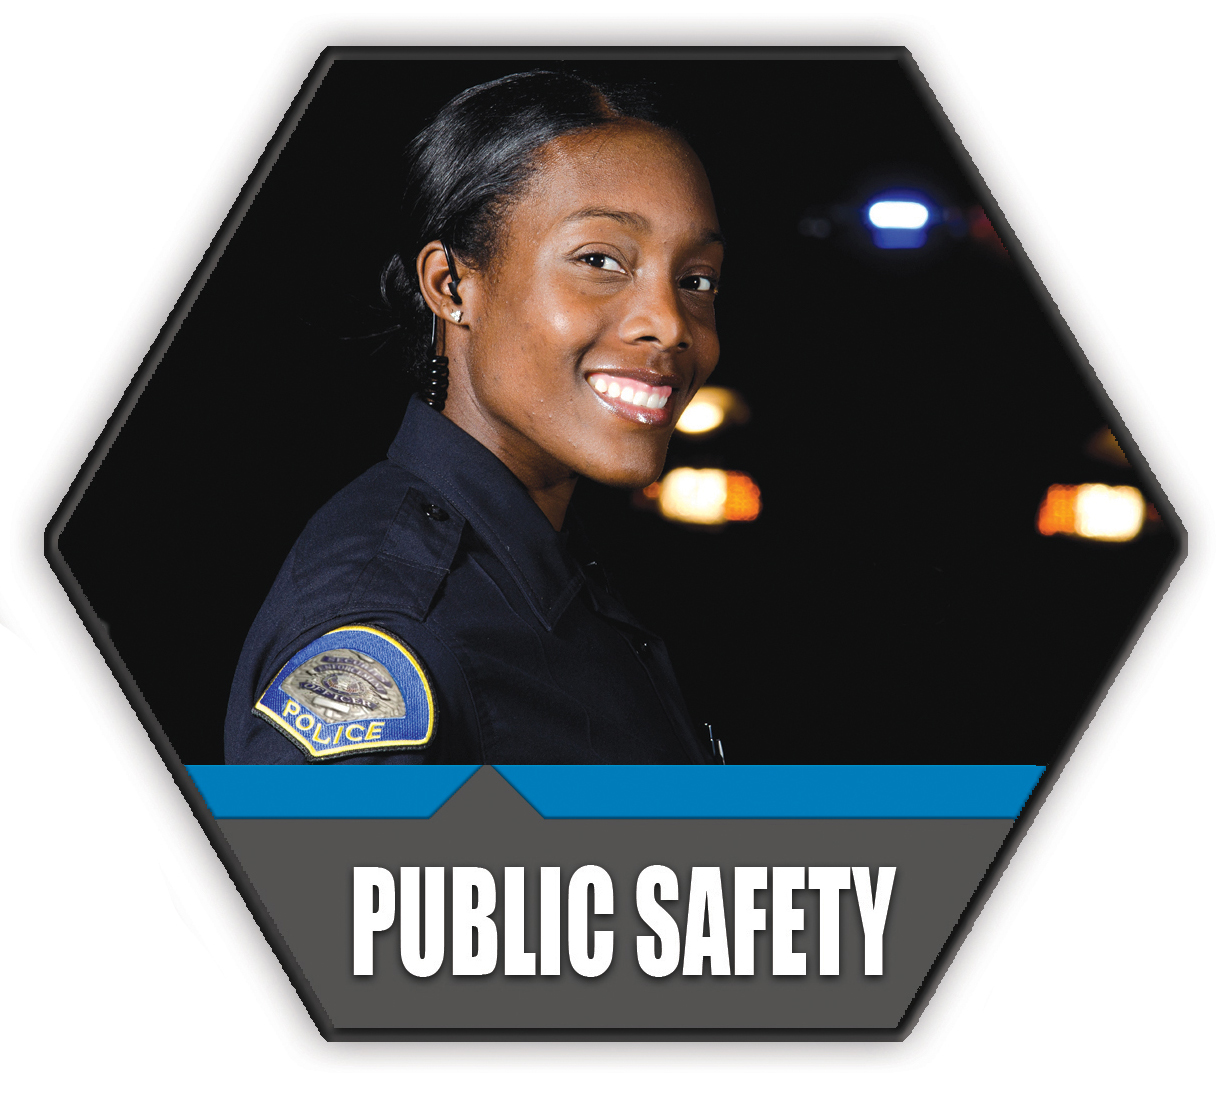 PUBLIC SAFETY TOPICS